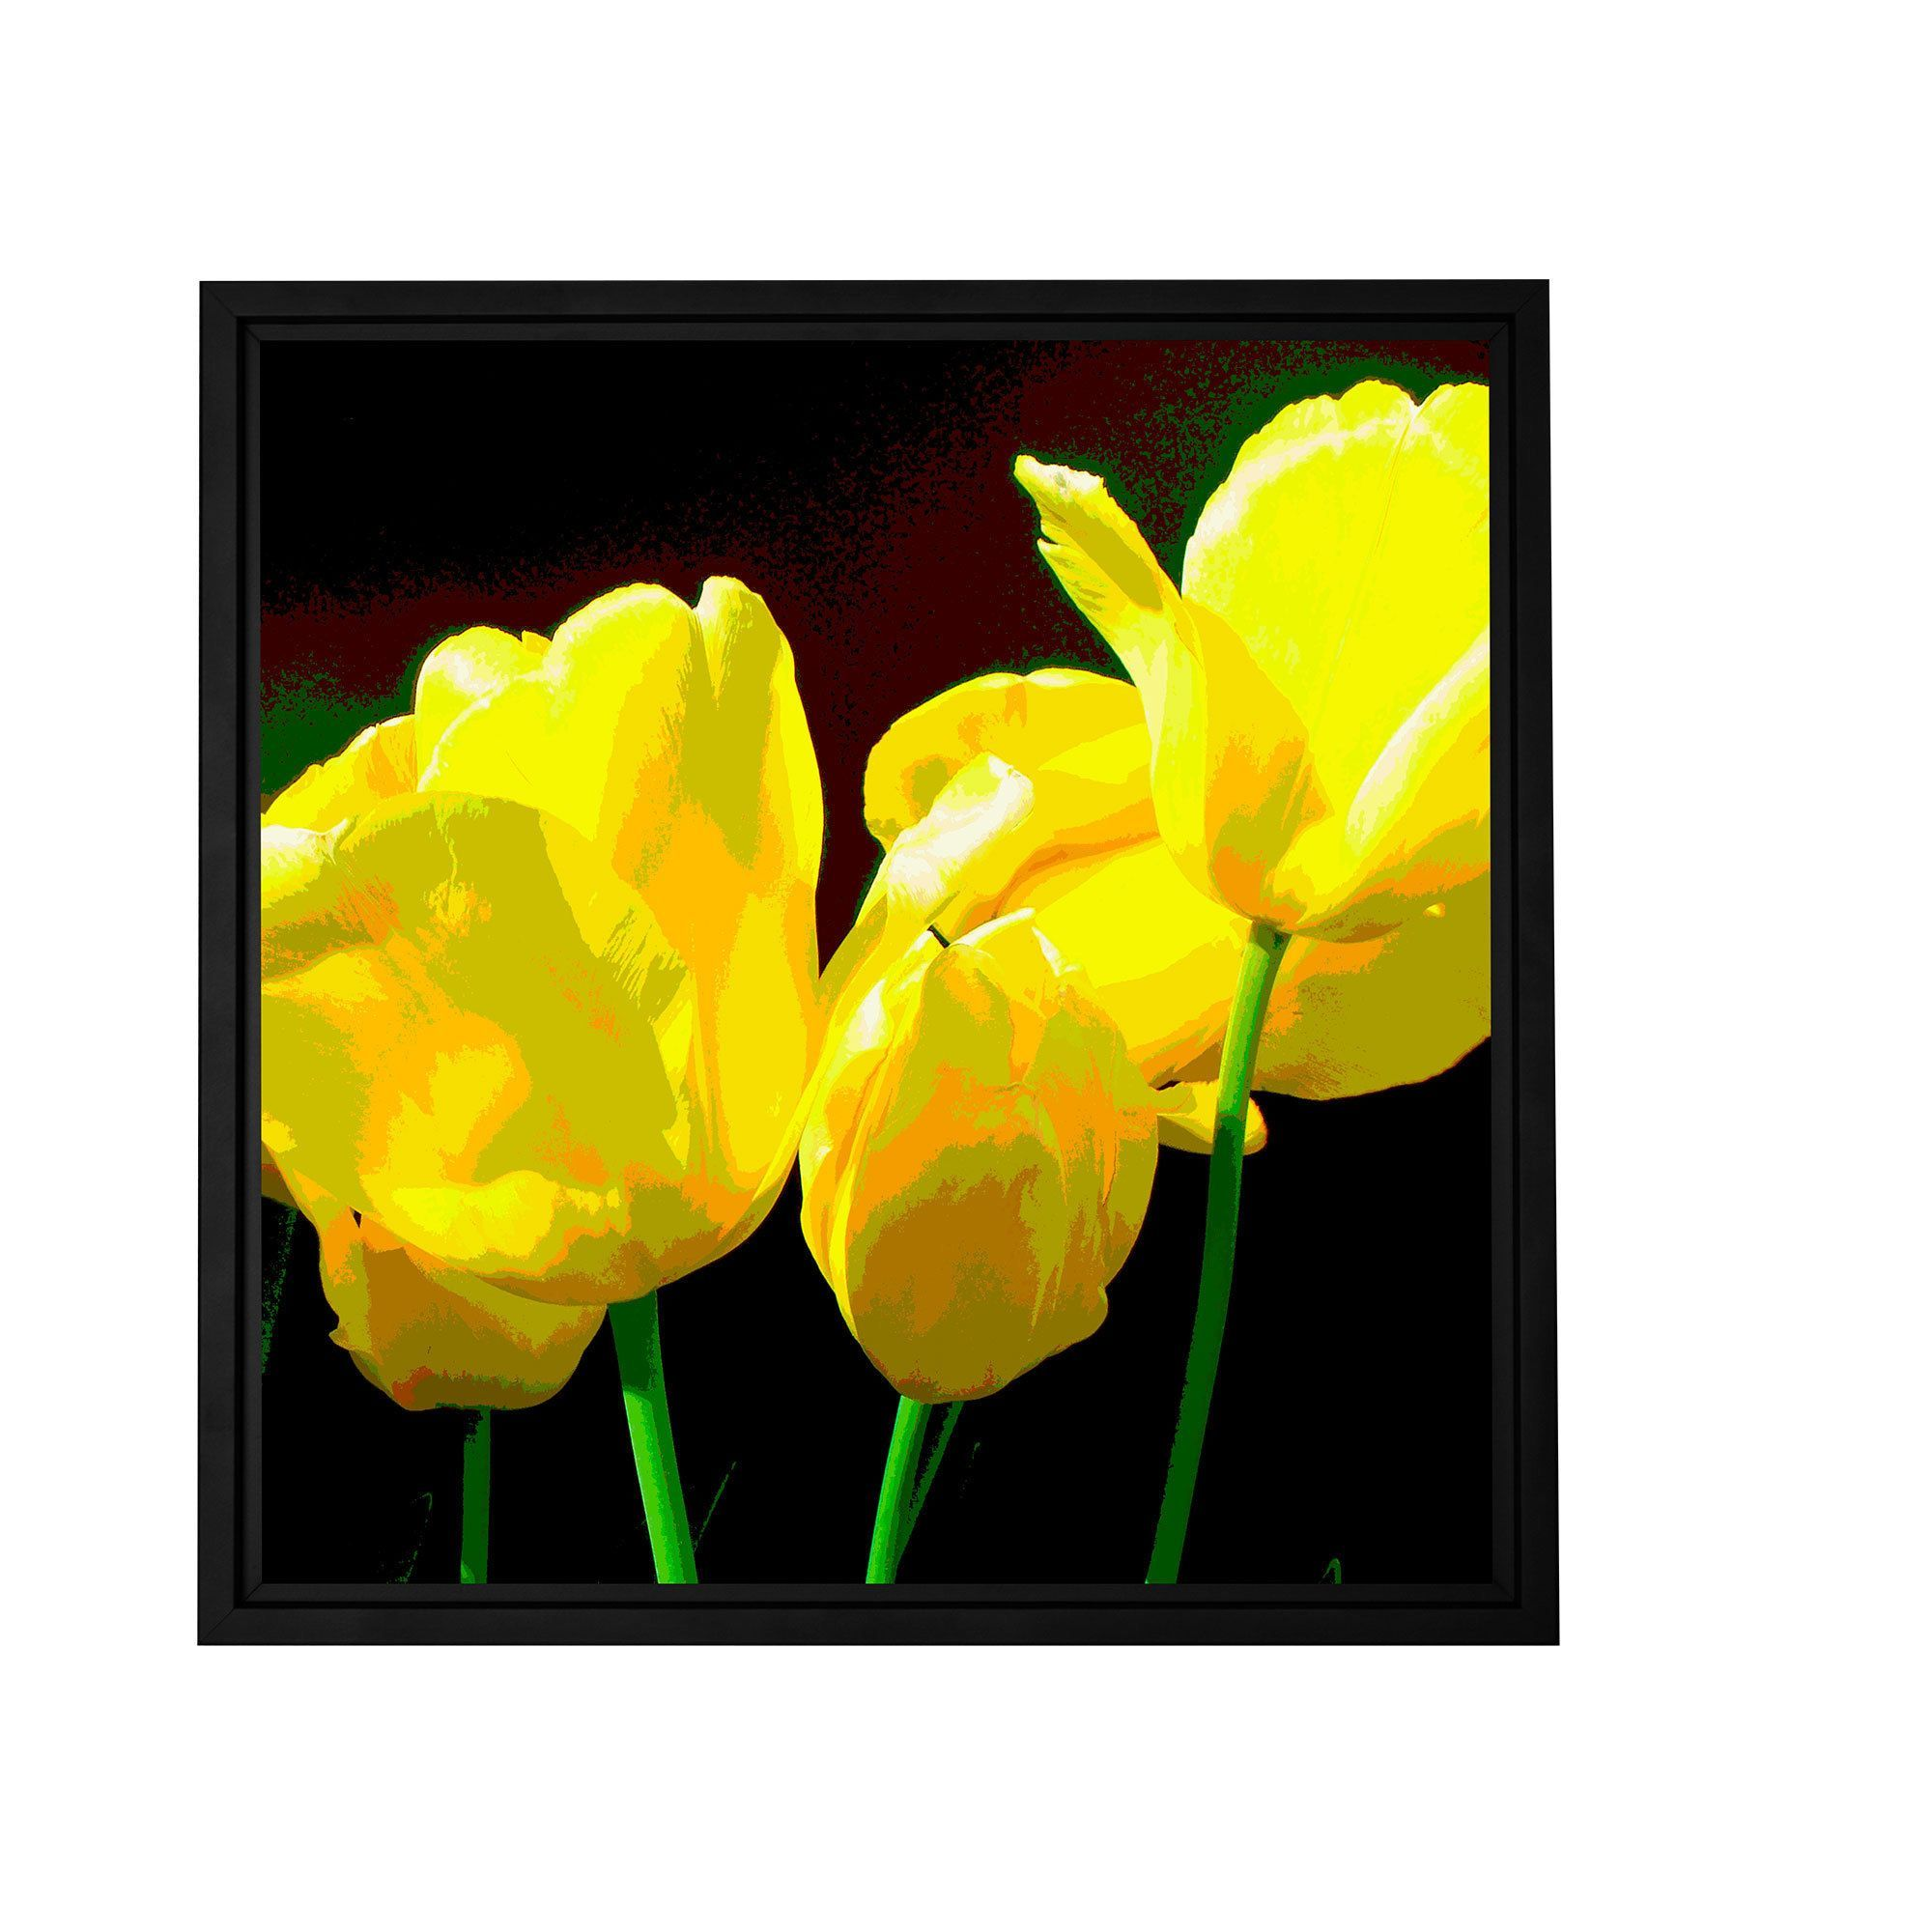 ArtWall Herb Dickinson ' Tulips 2' Floater Framed Gallery-wrapped Canvas